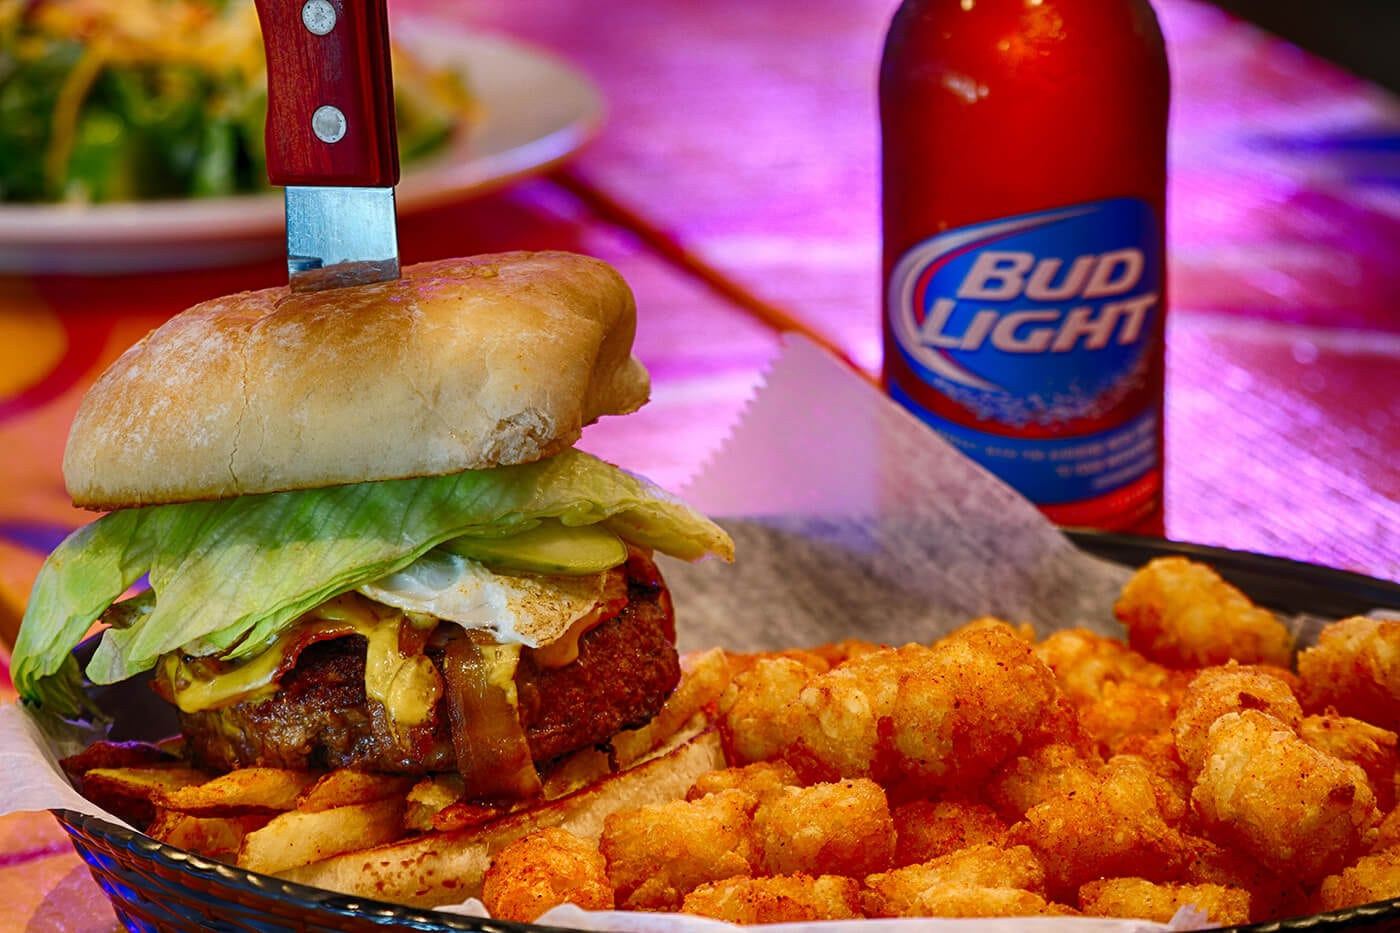 Photo of Tasty Slider with a Bud Light